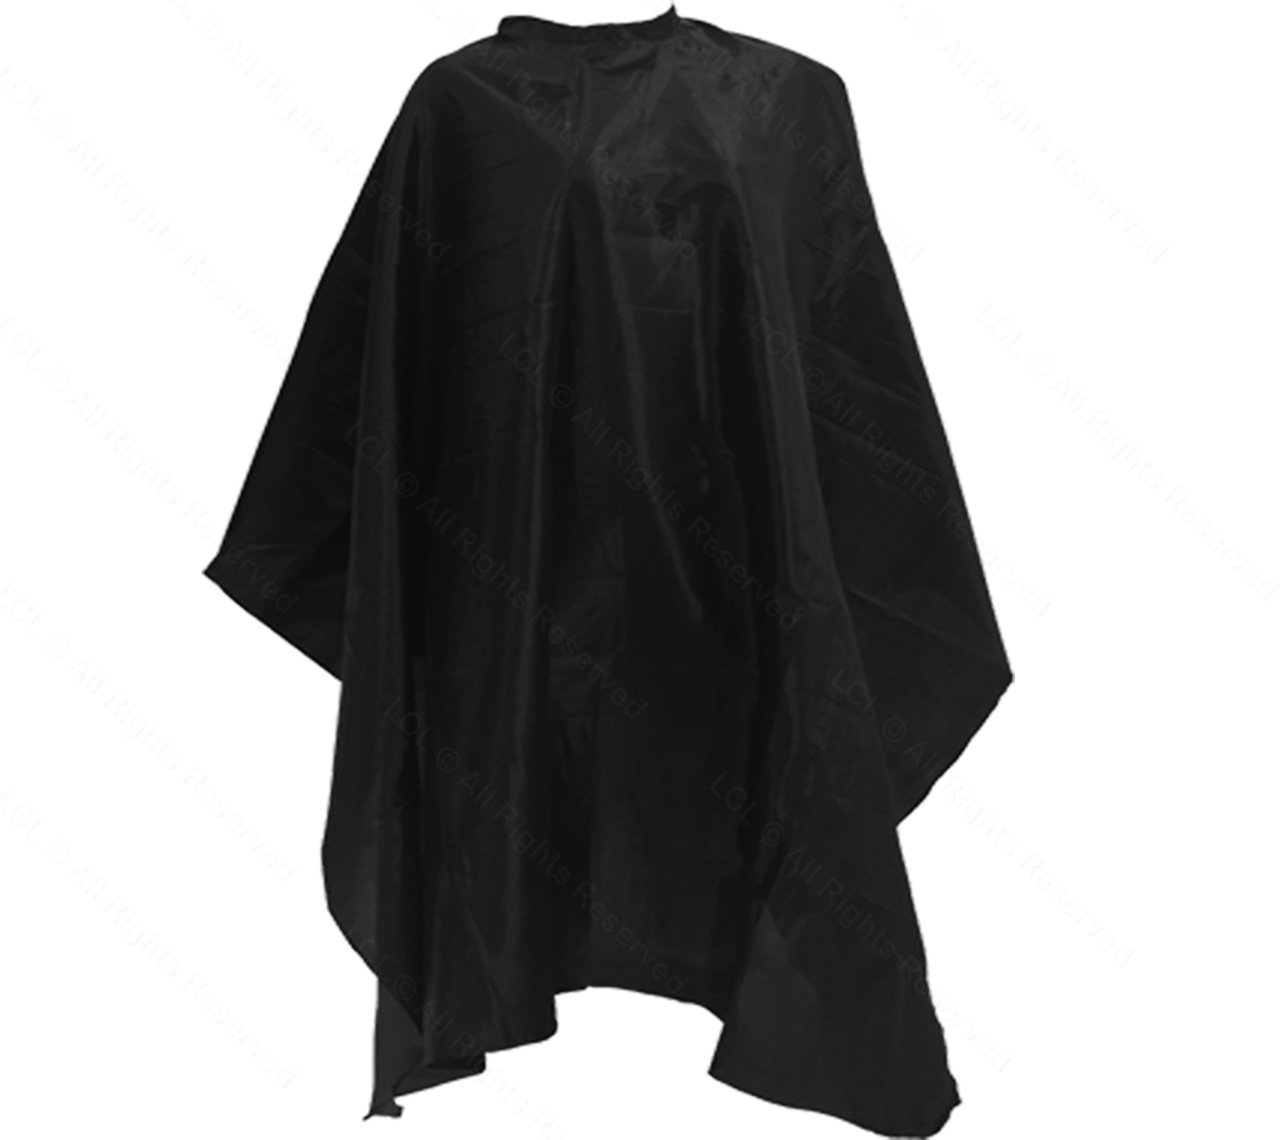 American Terry Mills Professional Hair Salon Nylon Barber Cape with Snap Closure Capes, Black, 20 Piece